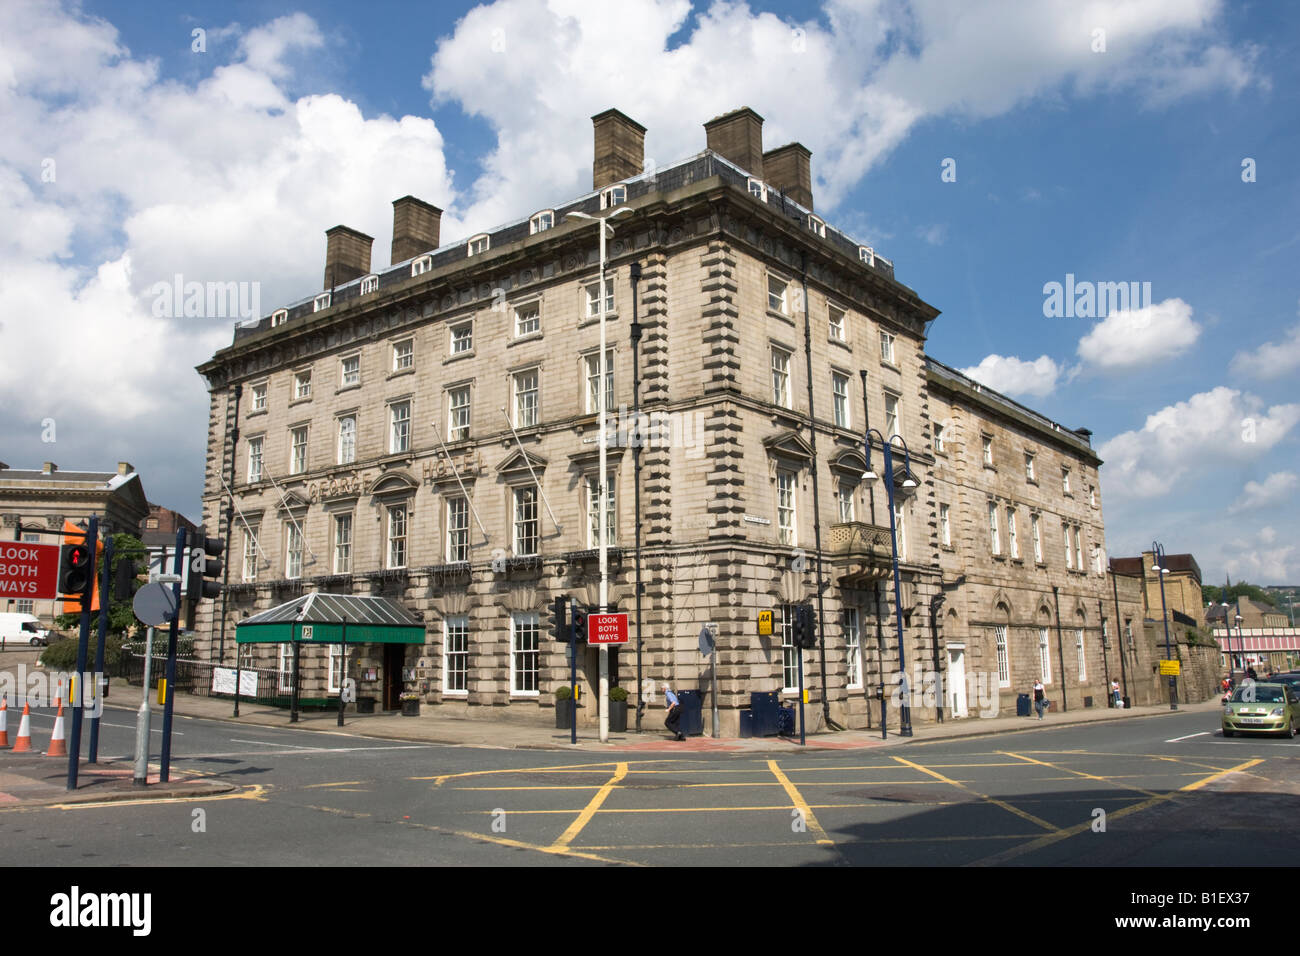 The George Hotel Situated next to Huddersfield Railway Station - Stock Image